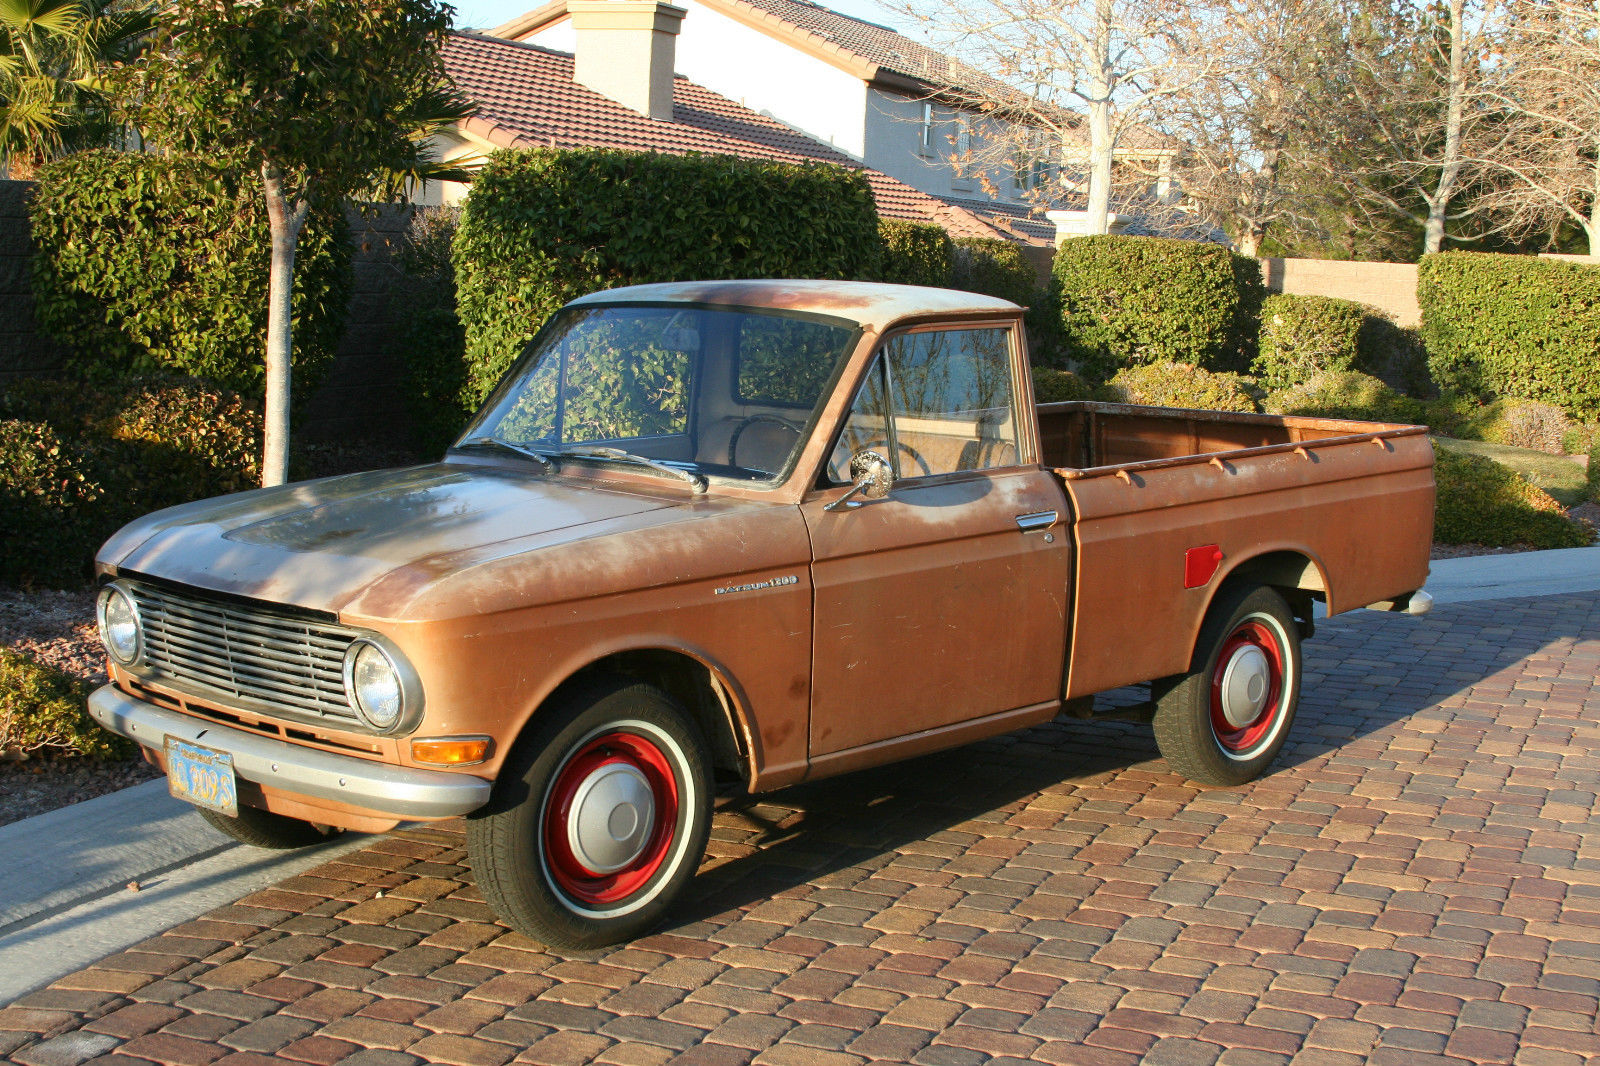 1966 datsun pickup 520 earlier than 521 510 411 truck mini original rare for sale in las vegas. Black Bedroom Furniture Sets. Home Design Ideas